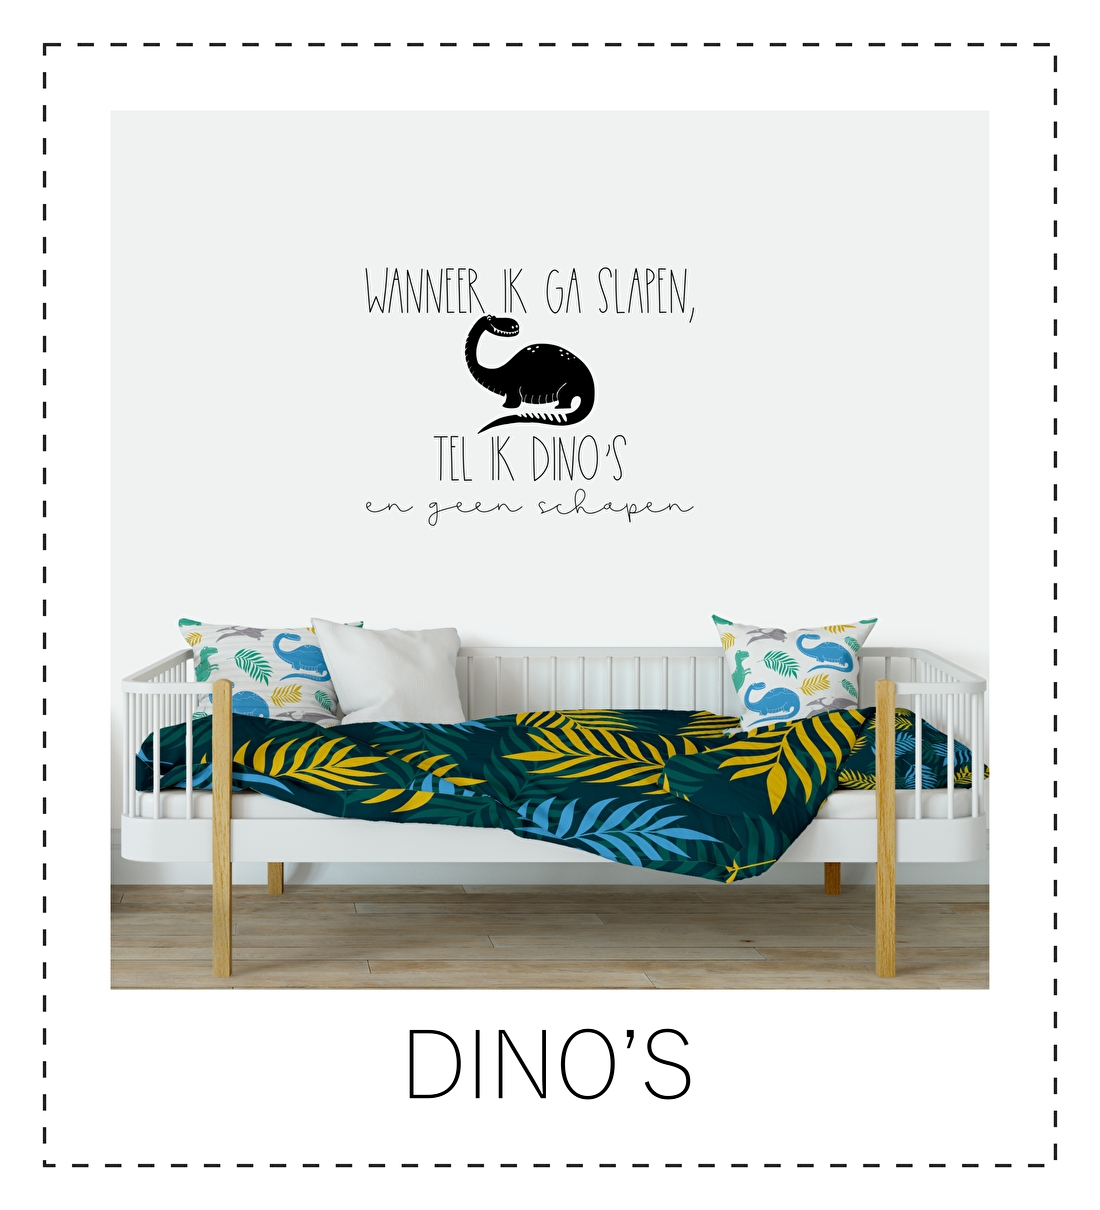 https://www.ilse-stickerdesign.nl/c-4749232/dino-kinderkamer/